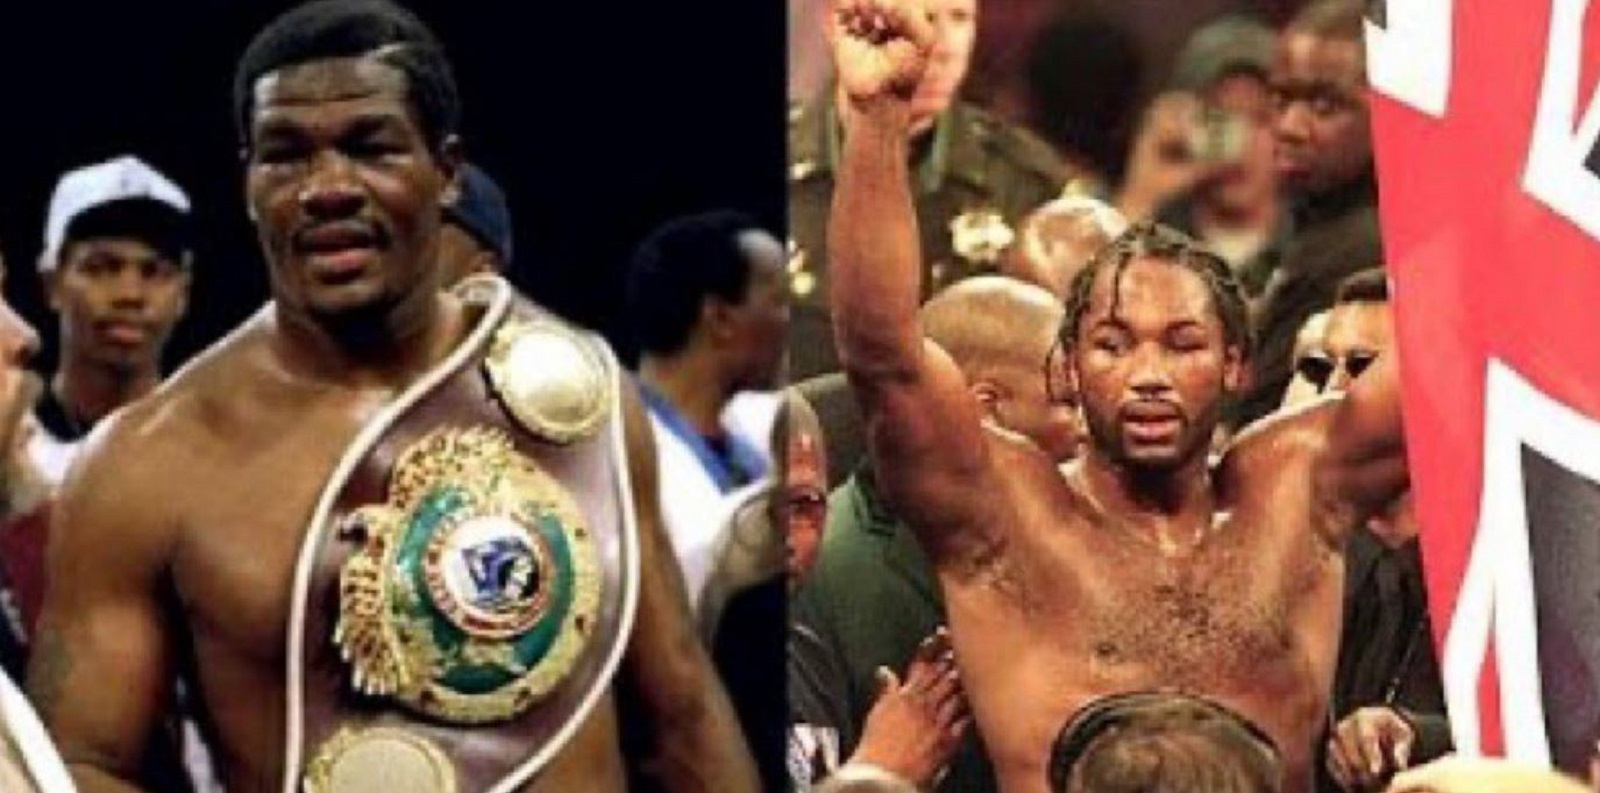 Boxing Legend Stokes Old Lennox Lewis Rivalry After All These Years